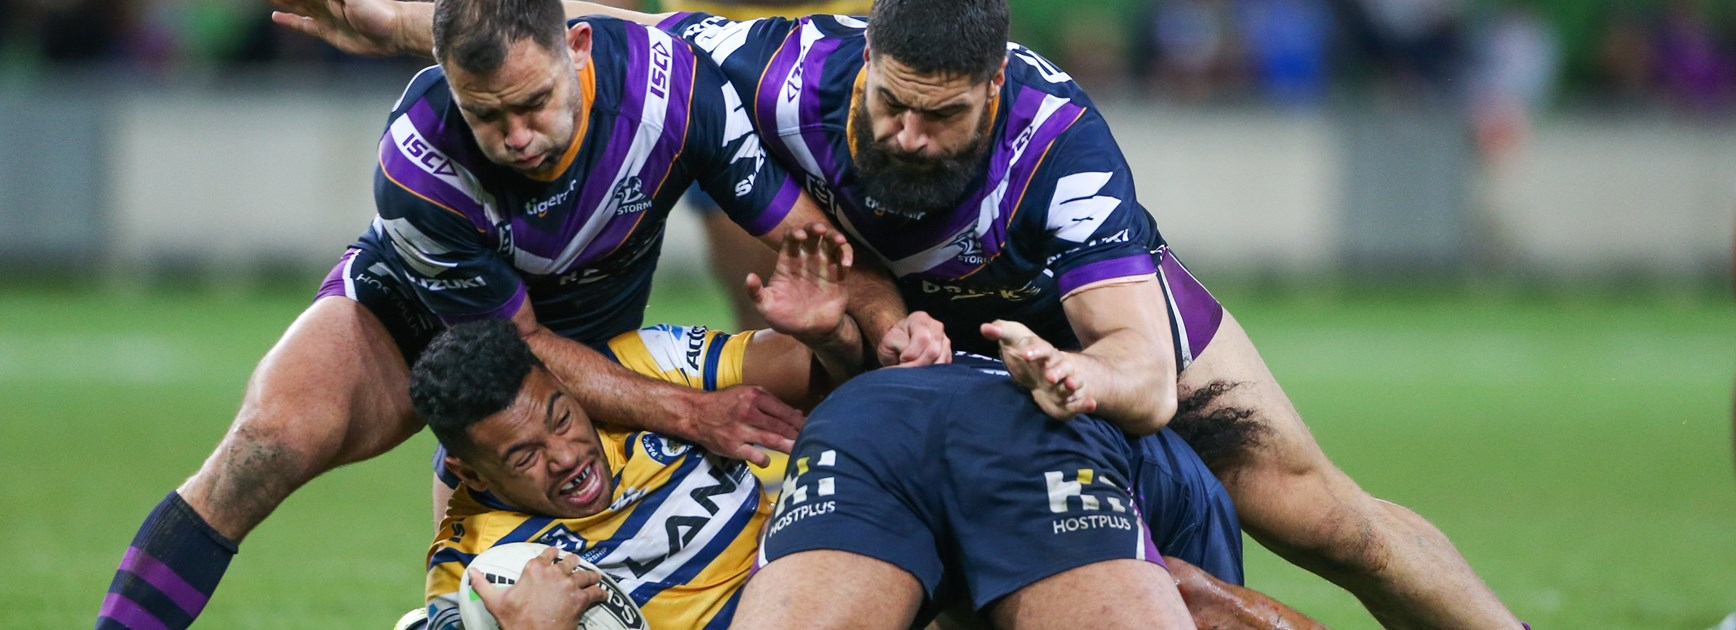 The Storm shut down the Eels in the semi-final.